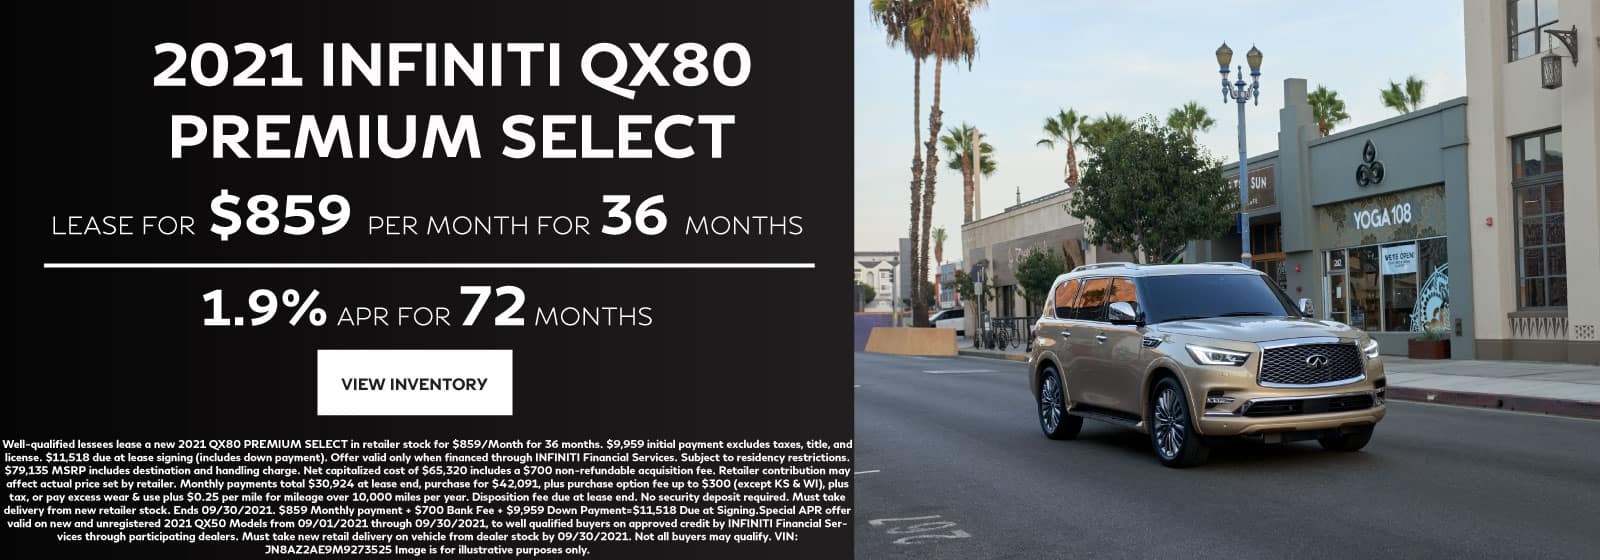 INFINTI QX80 Lease Offer